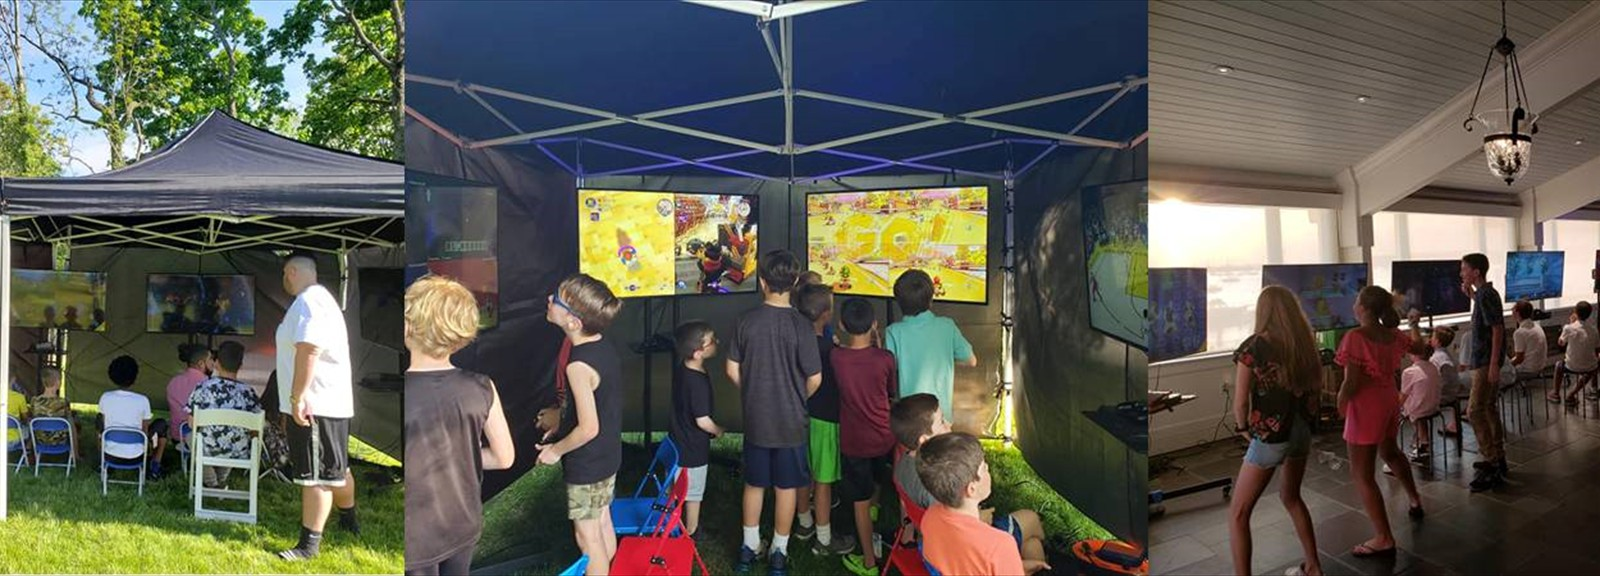 Indoor or Outdoor Mobile Game Rooms